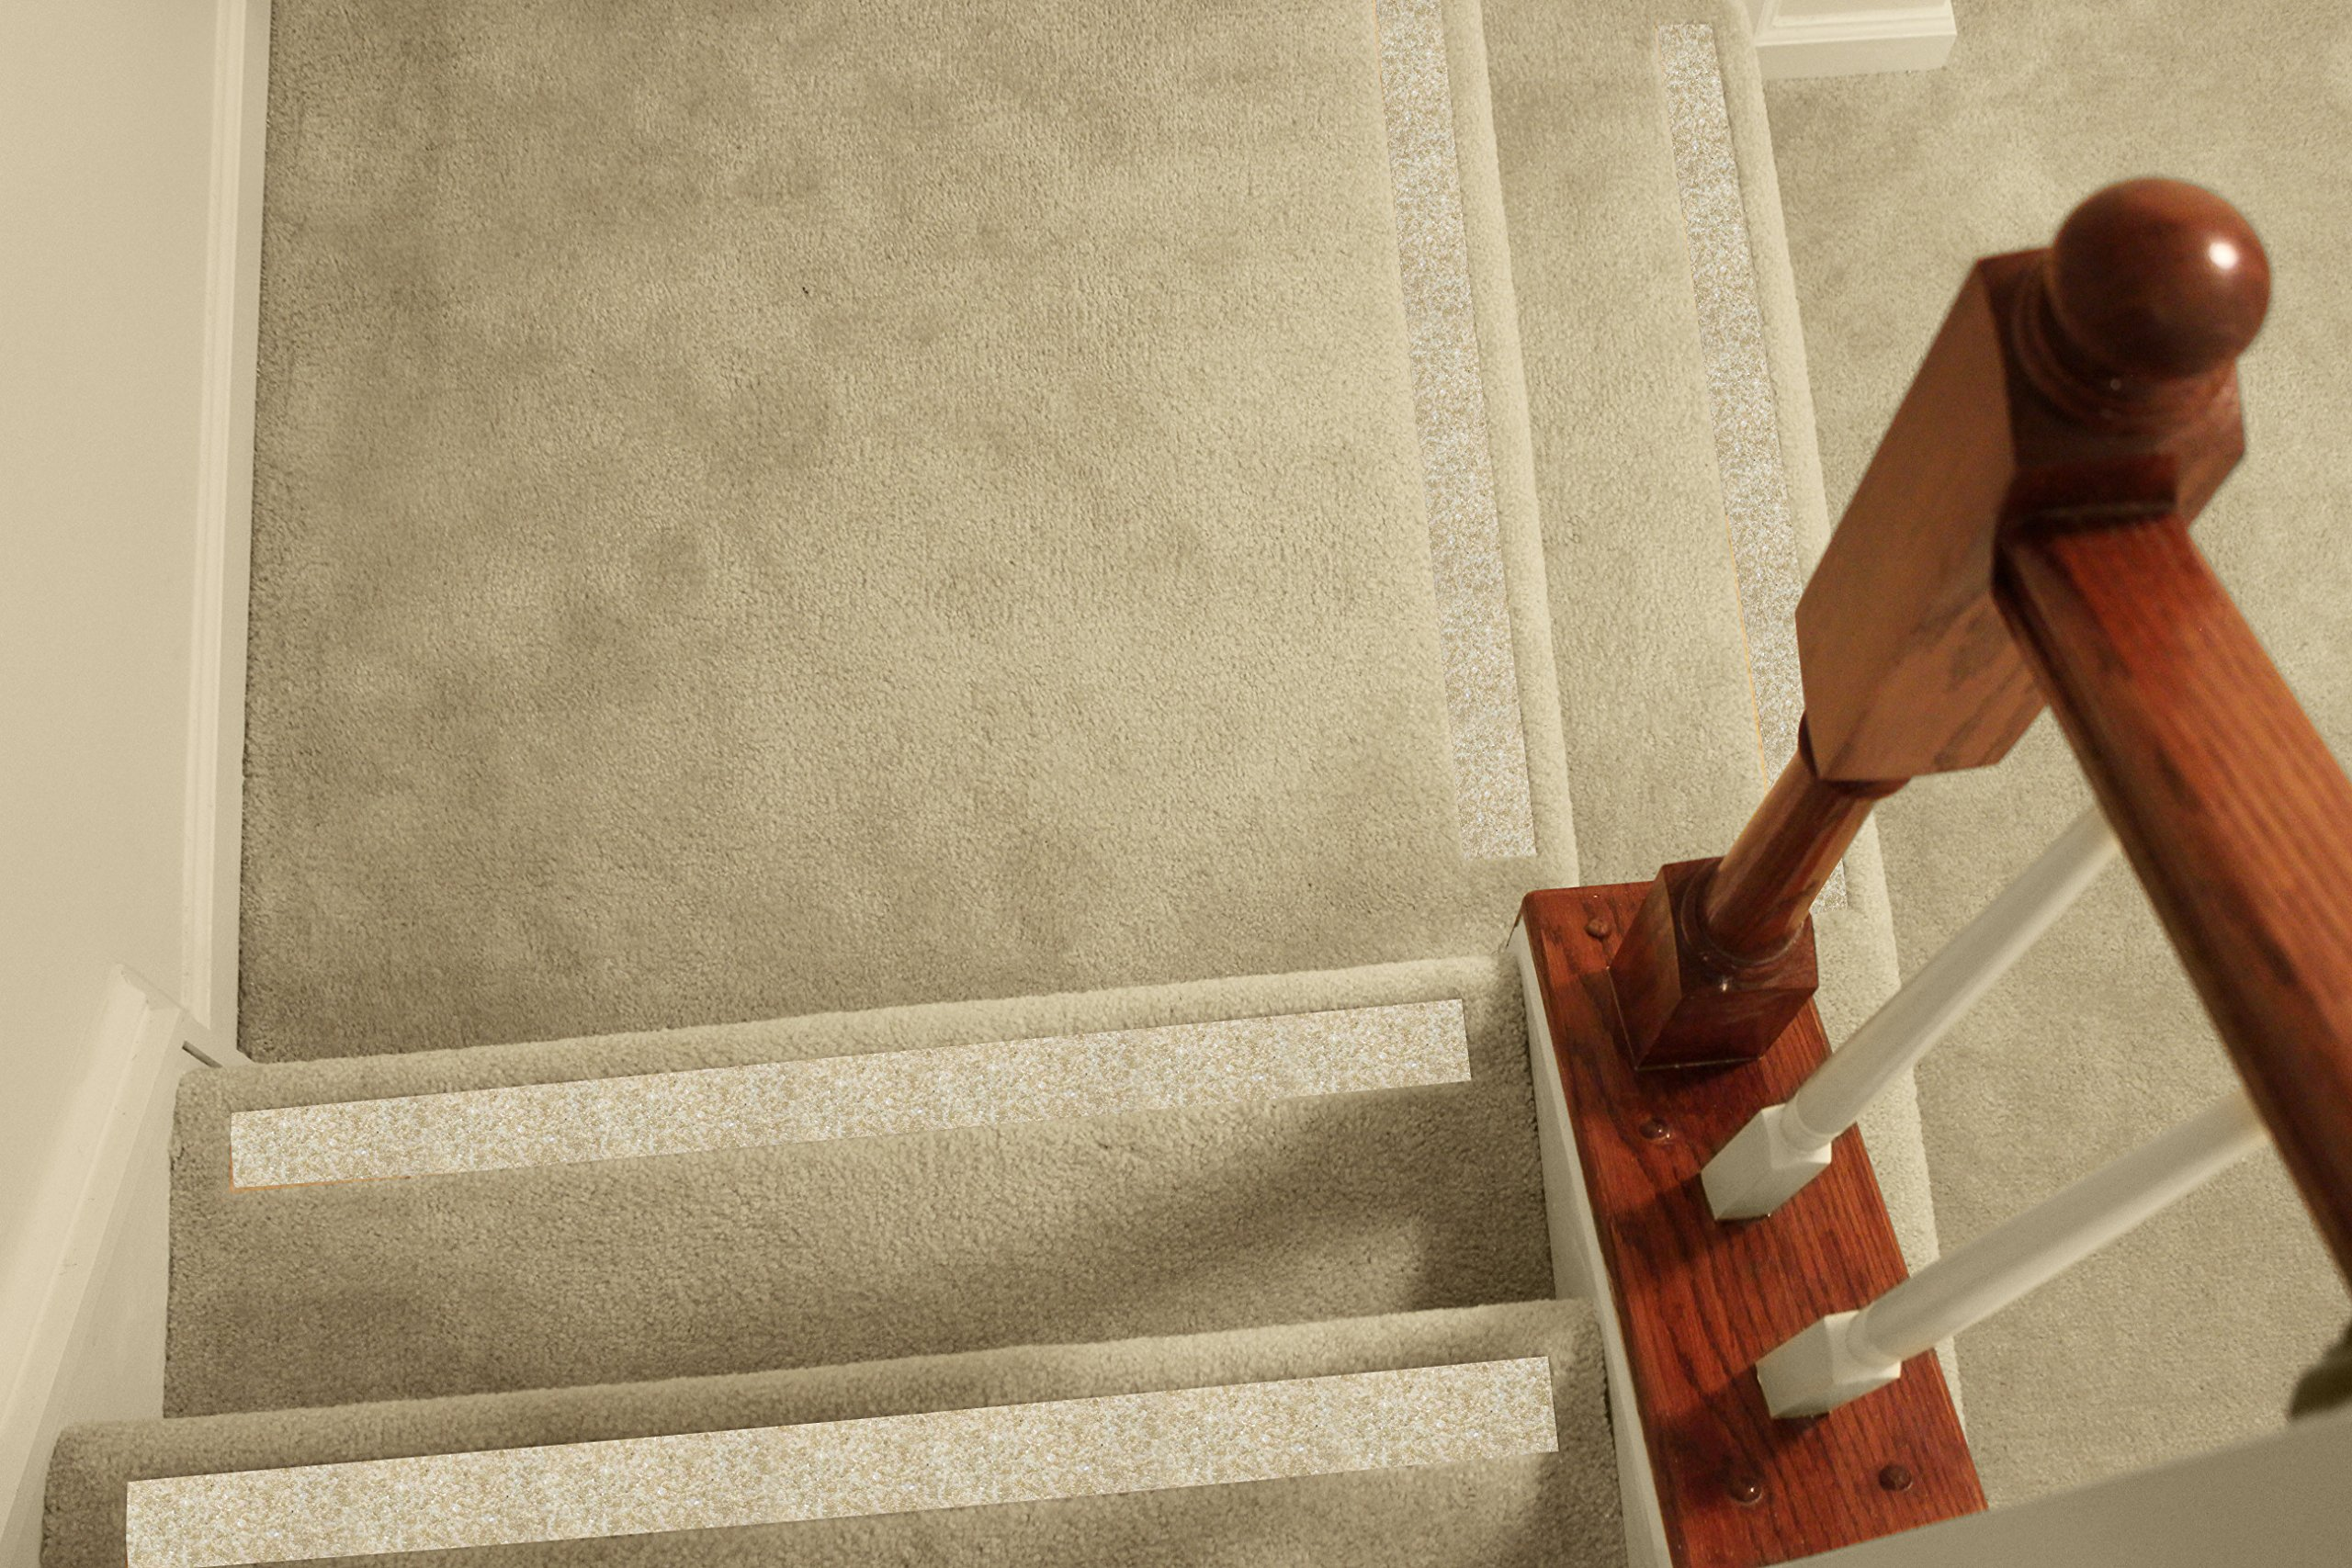 No-slip Strips - Non-Slip Nosing for Increased Safety On Carpeted Stairs, Beige-Gravel Color, MEDIUM Grit Traction for Indoor Carpeted Stairs, 37x2 Inches, 5 Strips